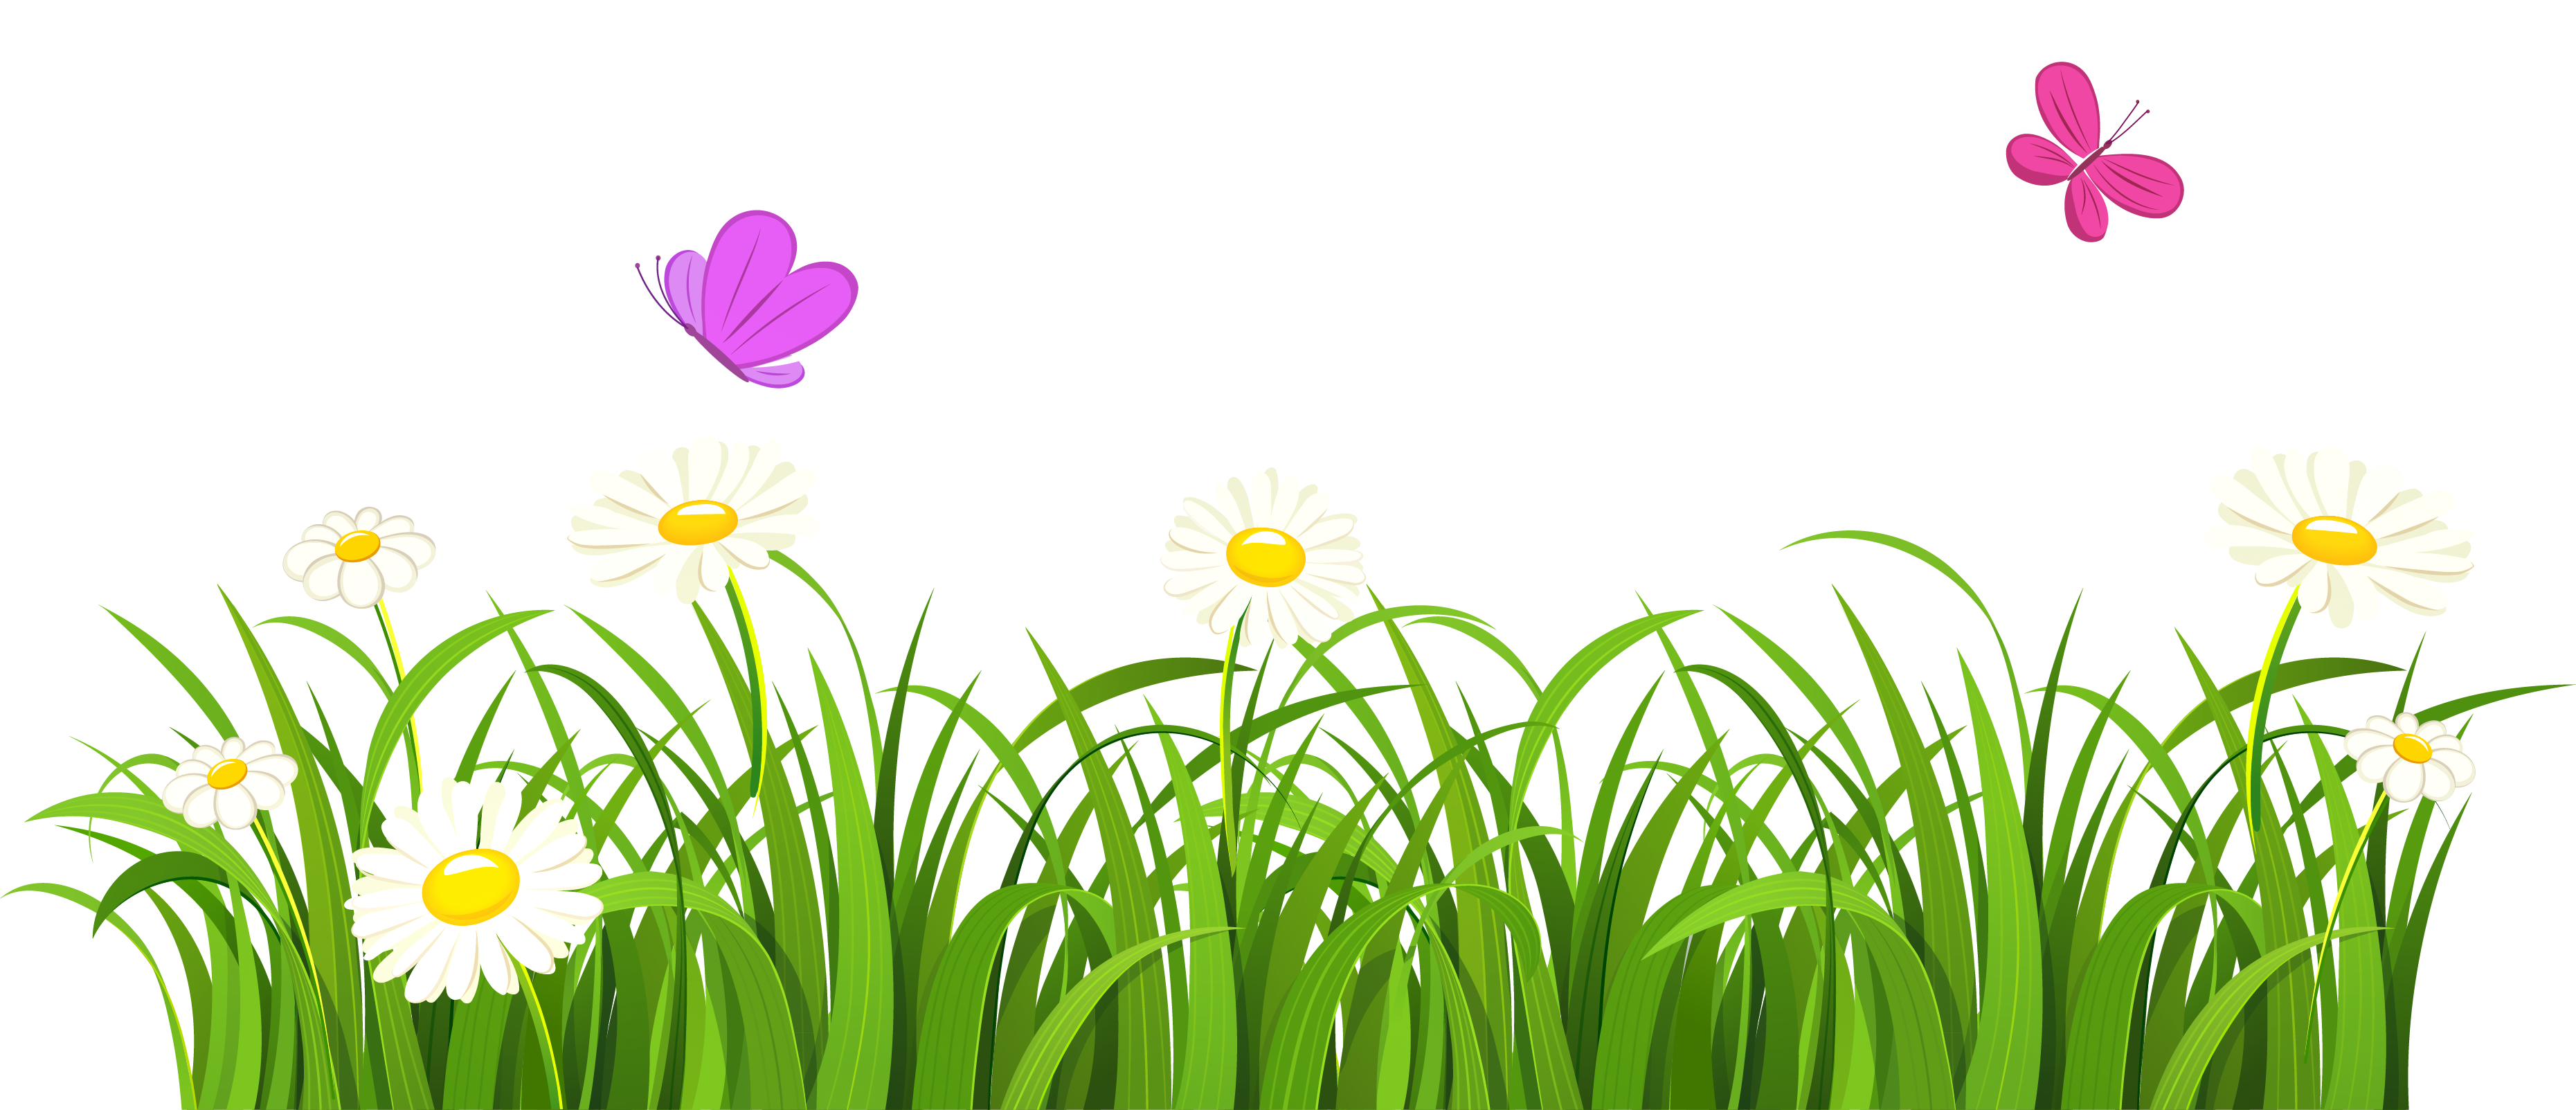 Nature clipart spring flower #2